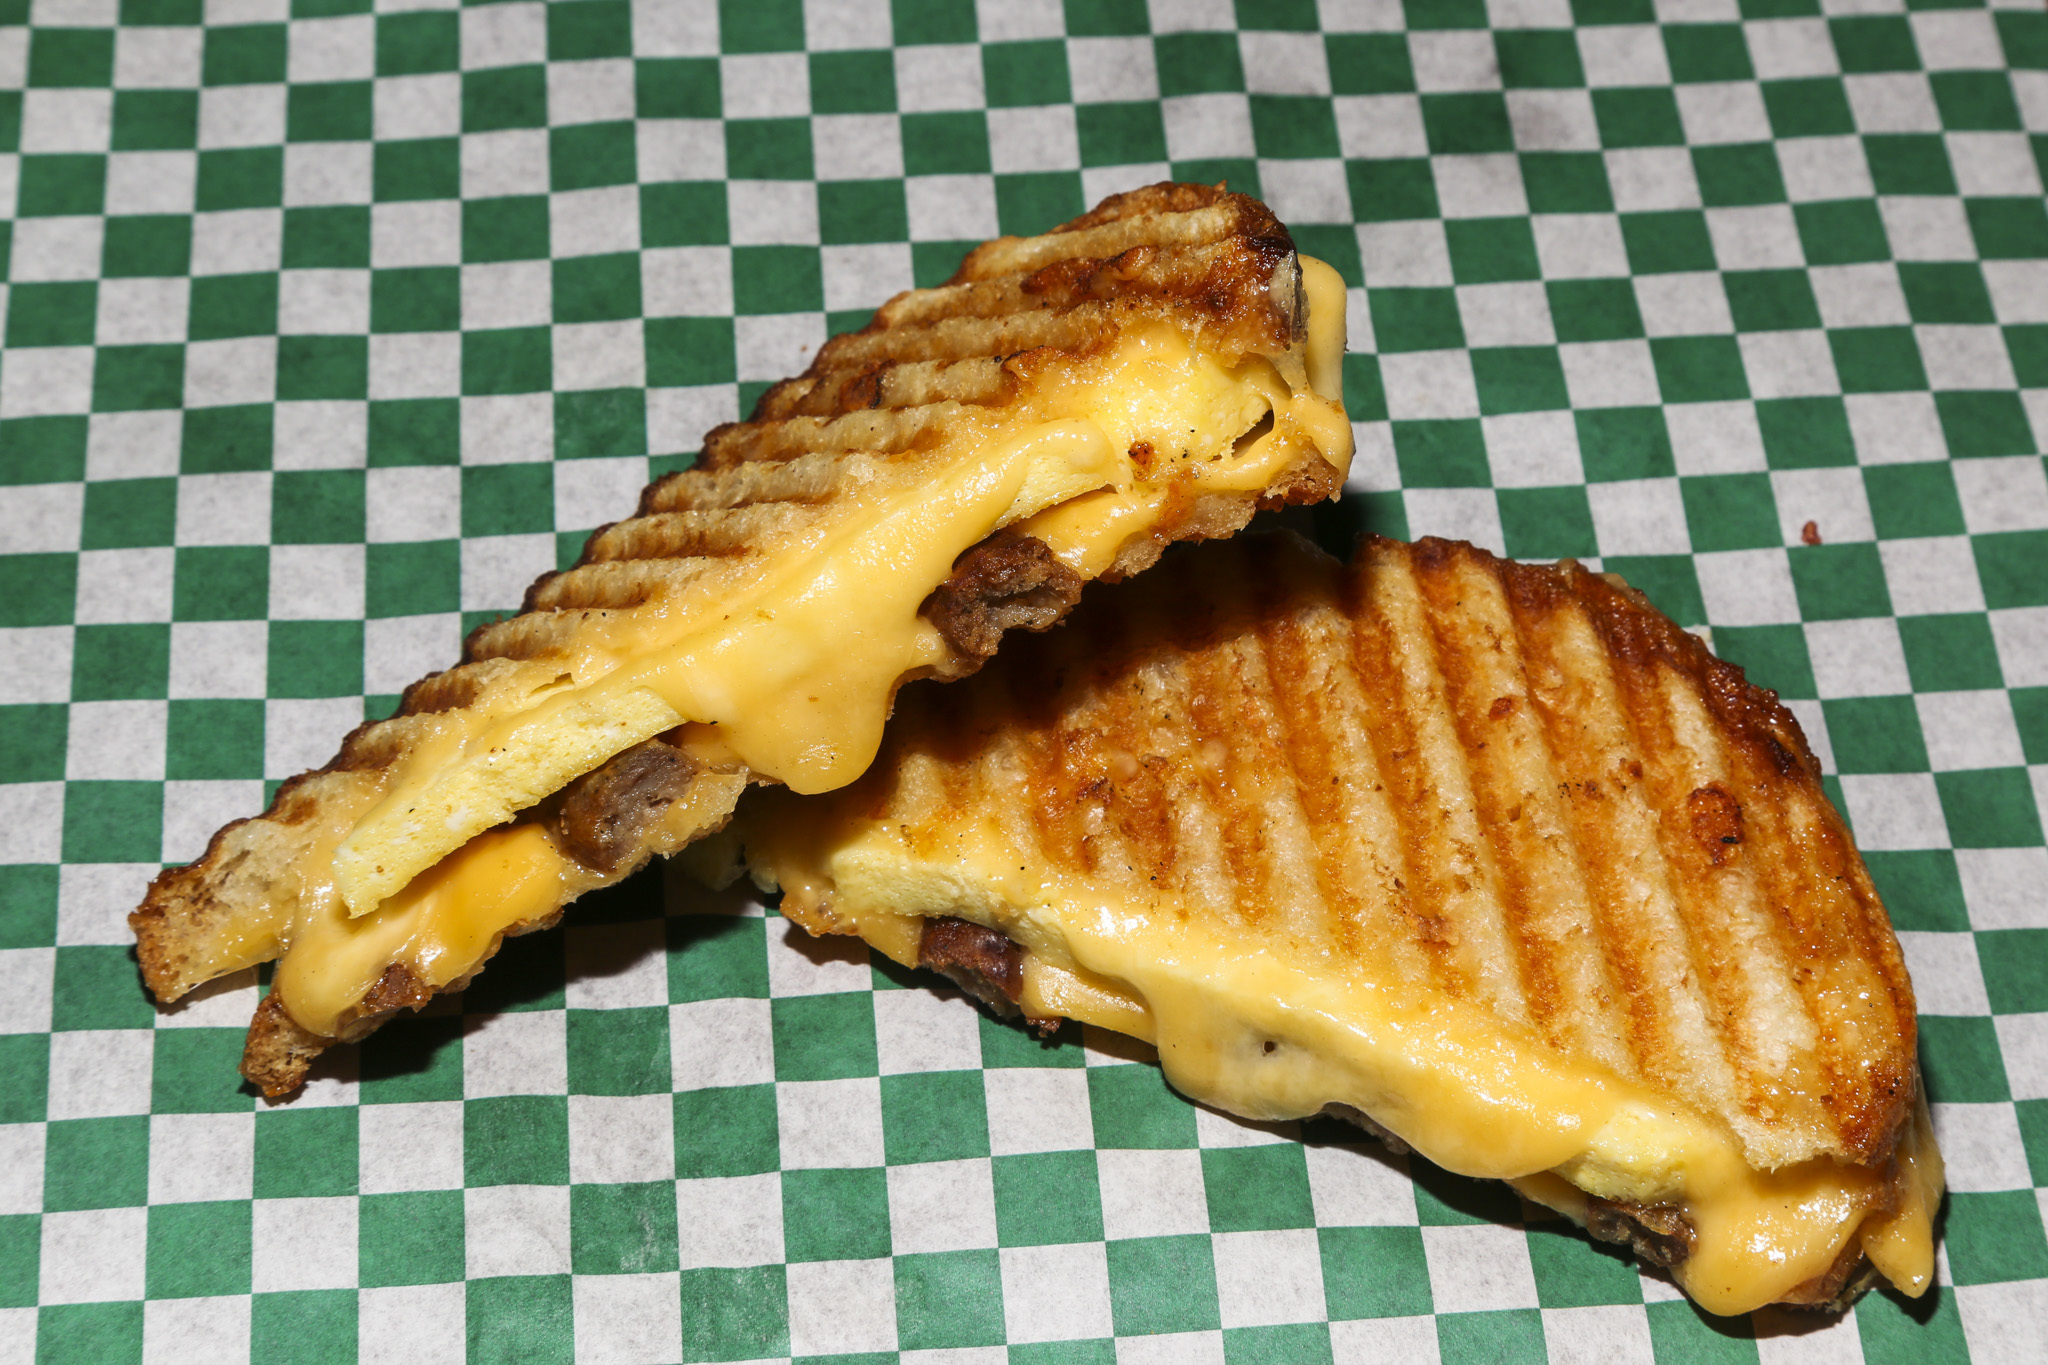 The Breakfast Club No. 1 at Gayle's Best Ever Grilled Cheese